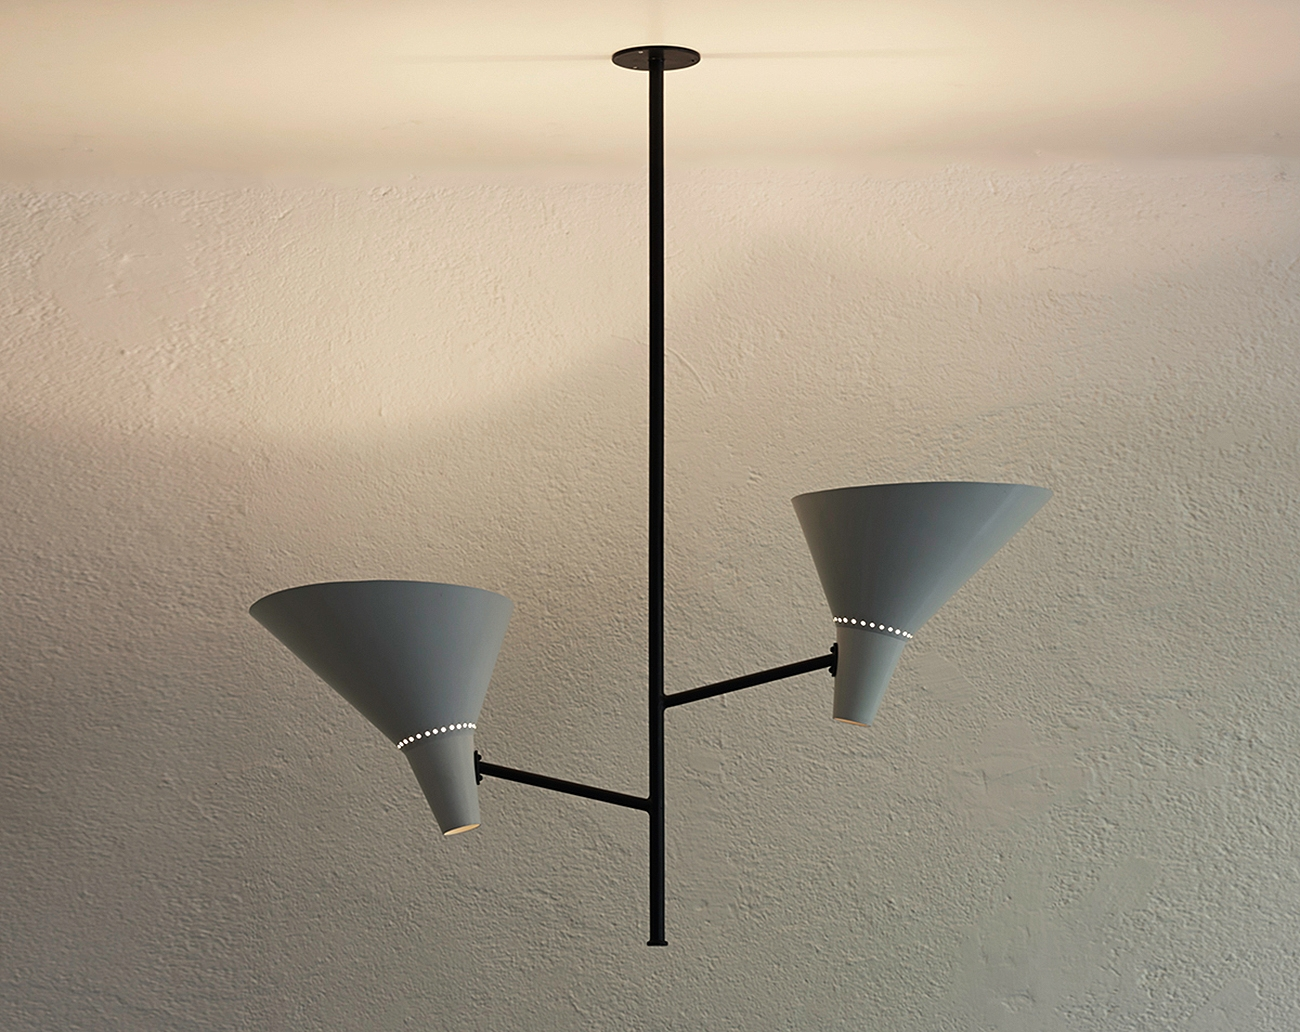 ceiling-lamp-by-prof-moor-for-bag-turgi-image-03